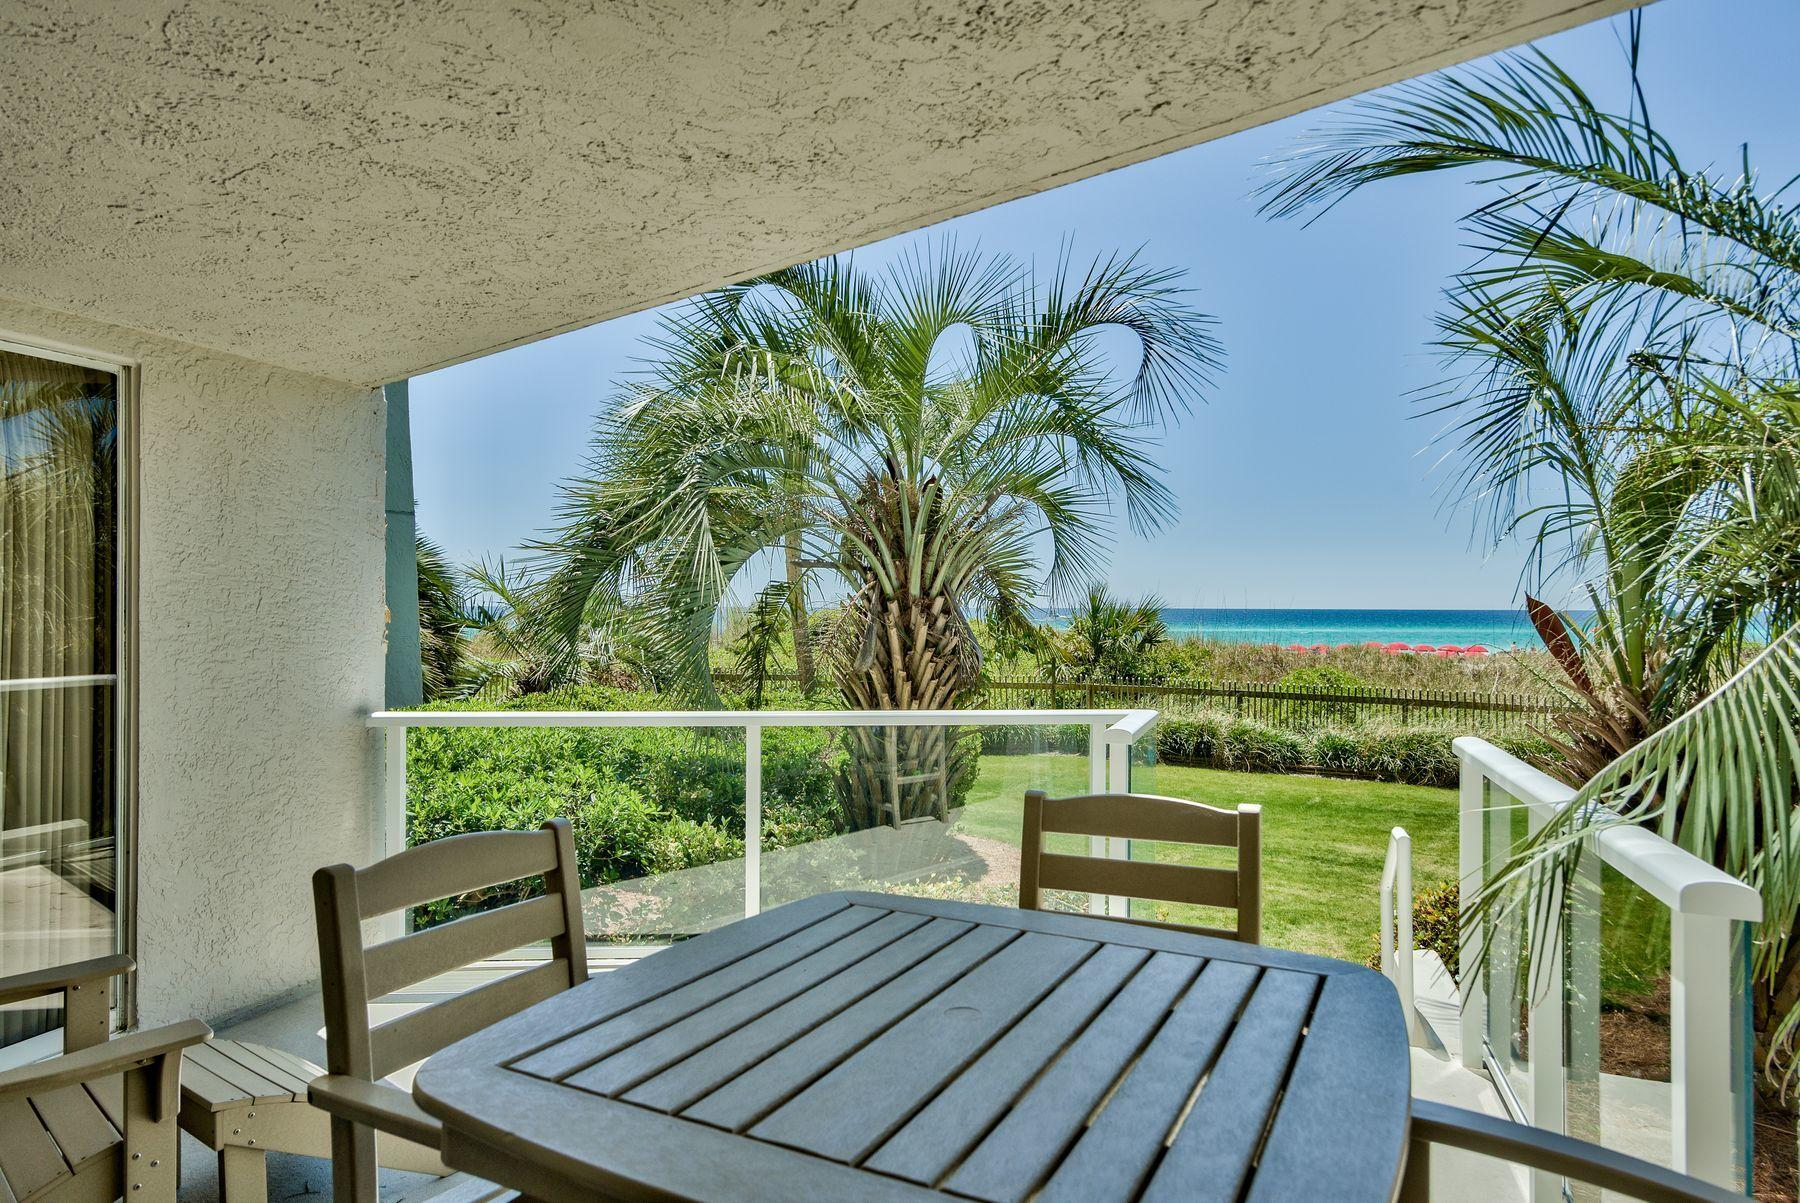 A 2 Bedroom 2 Bedroom Beachside Two Condominium